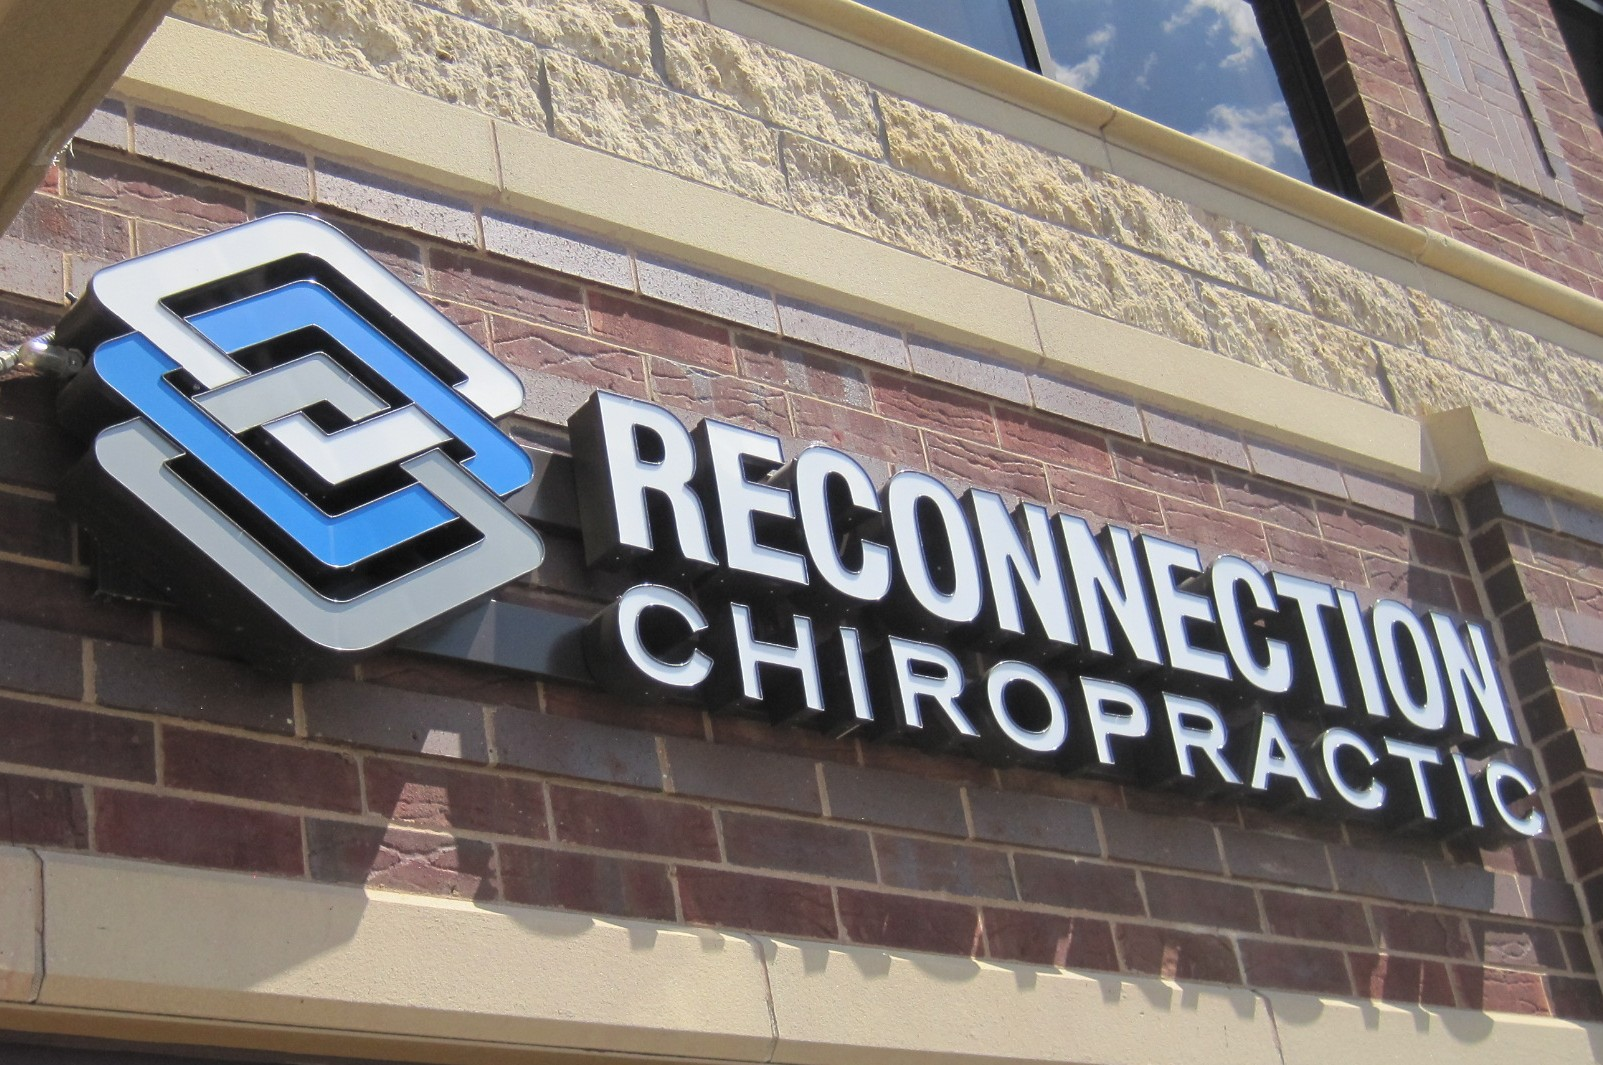 Reconnection Chiropractic